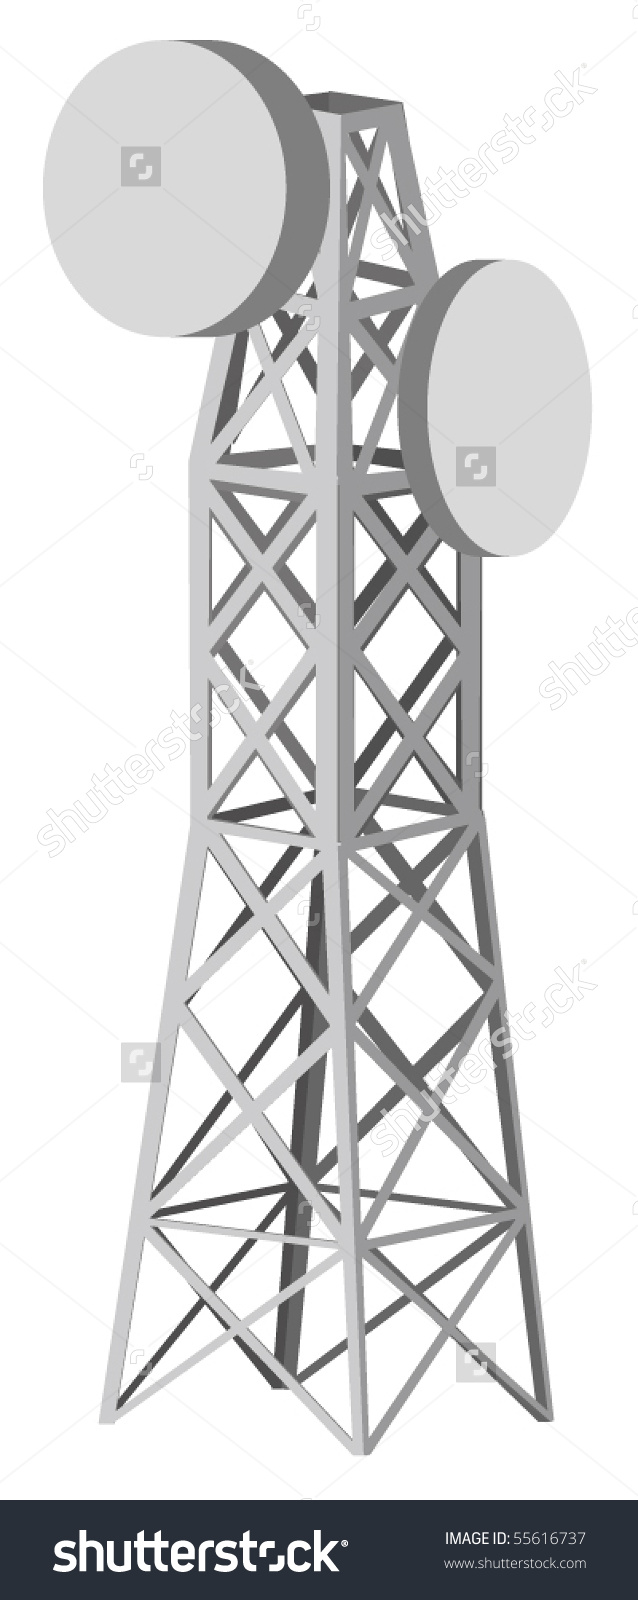 Antenna pole clipart 20 free Cliparts | Download images on